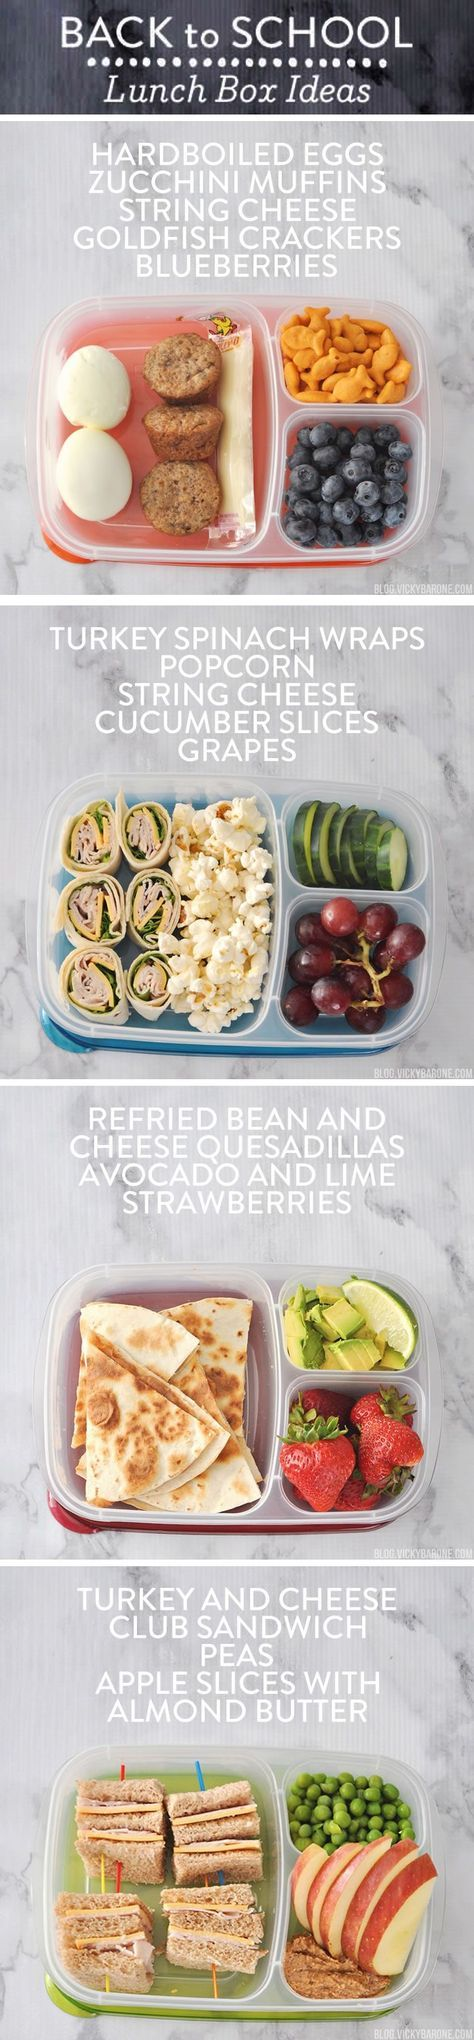 Yummy packed lunch ideas for when you're stumped on what to send your kiddo to school with. Packed in /easylunchboxes/, these lunch combinations have fruits, veggies, and protein to give your little o (Easy Meal Prep For Kids)